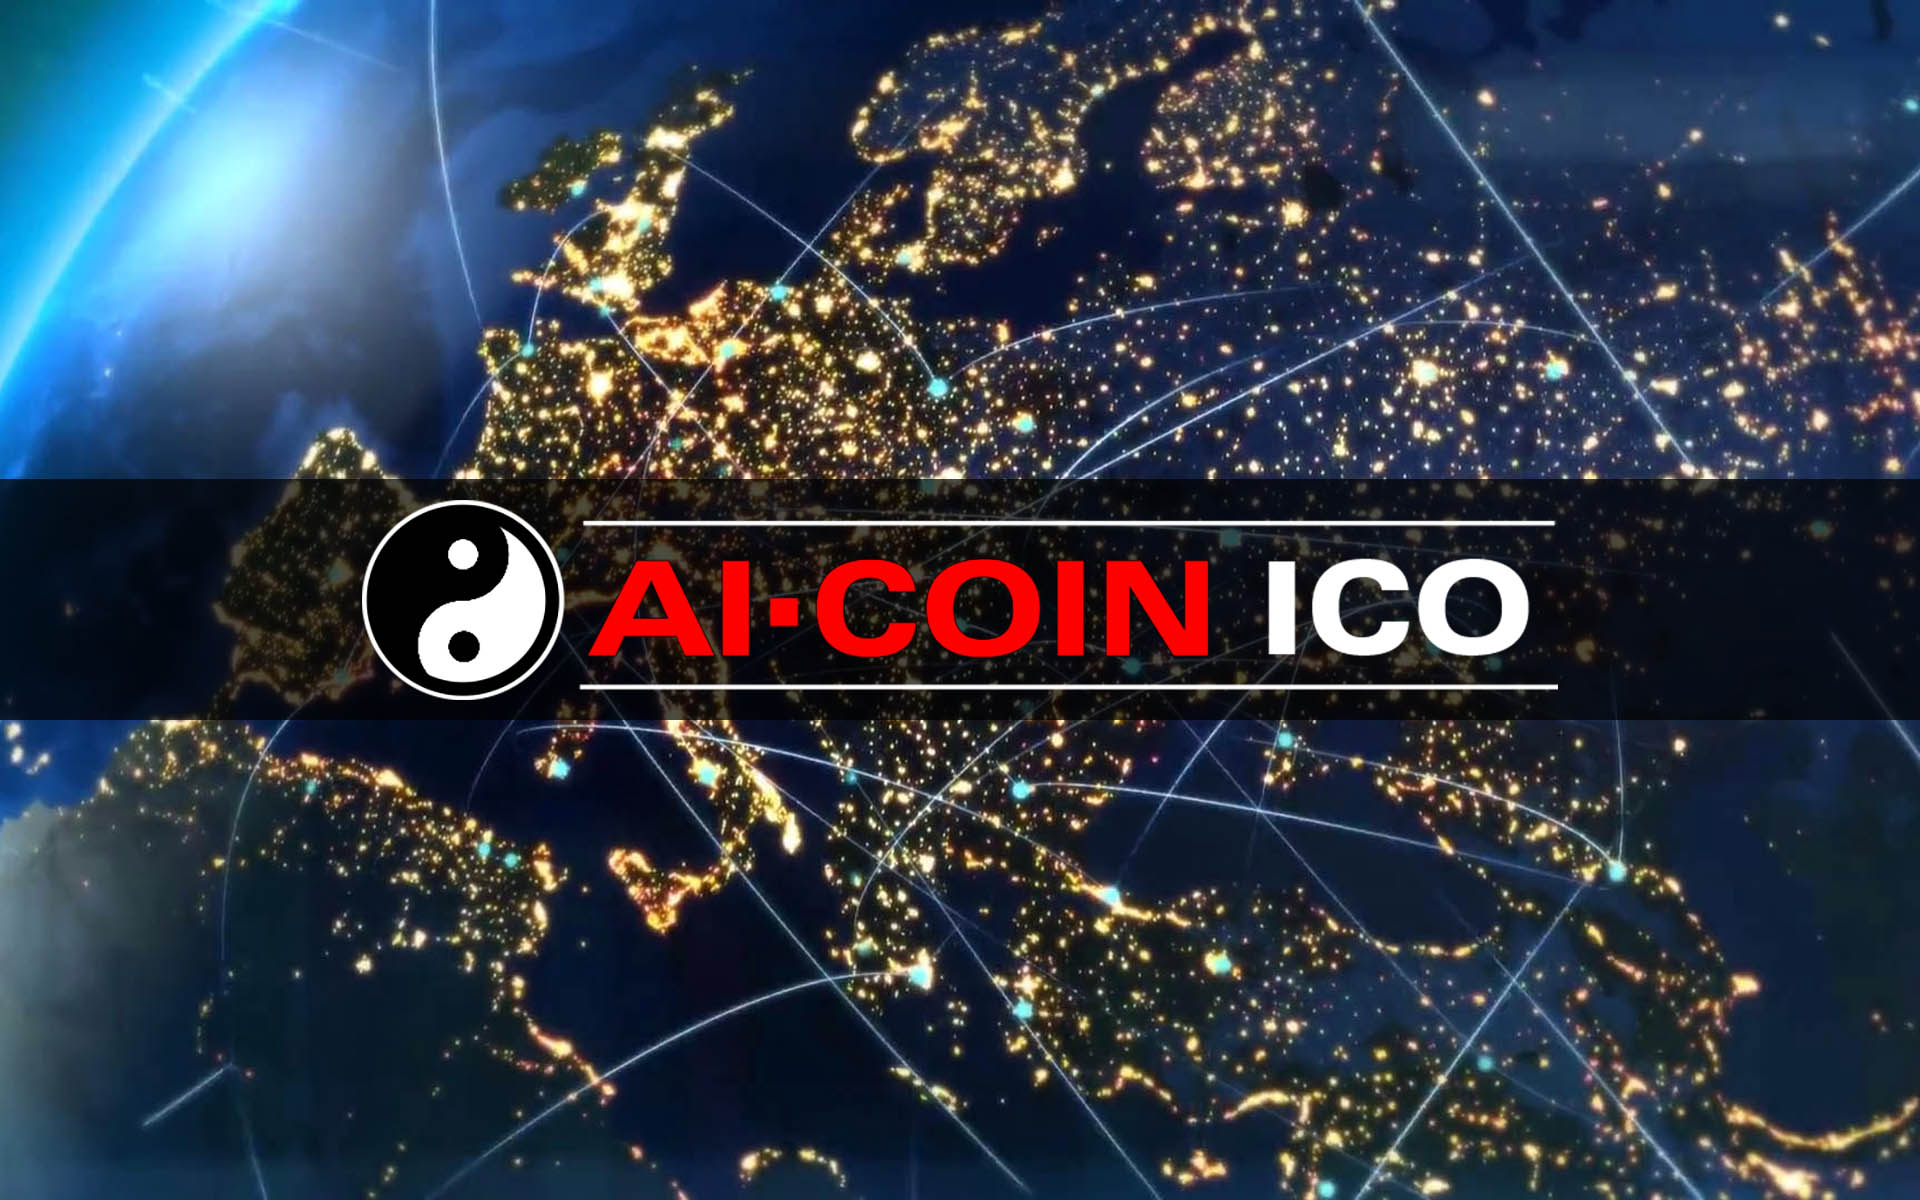 Jon Matonis Appointed as First Member of AICoin ICO Start-up Investment Board